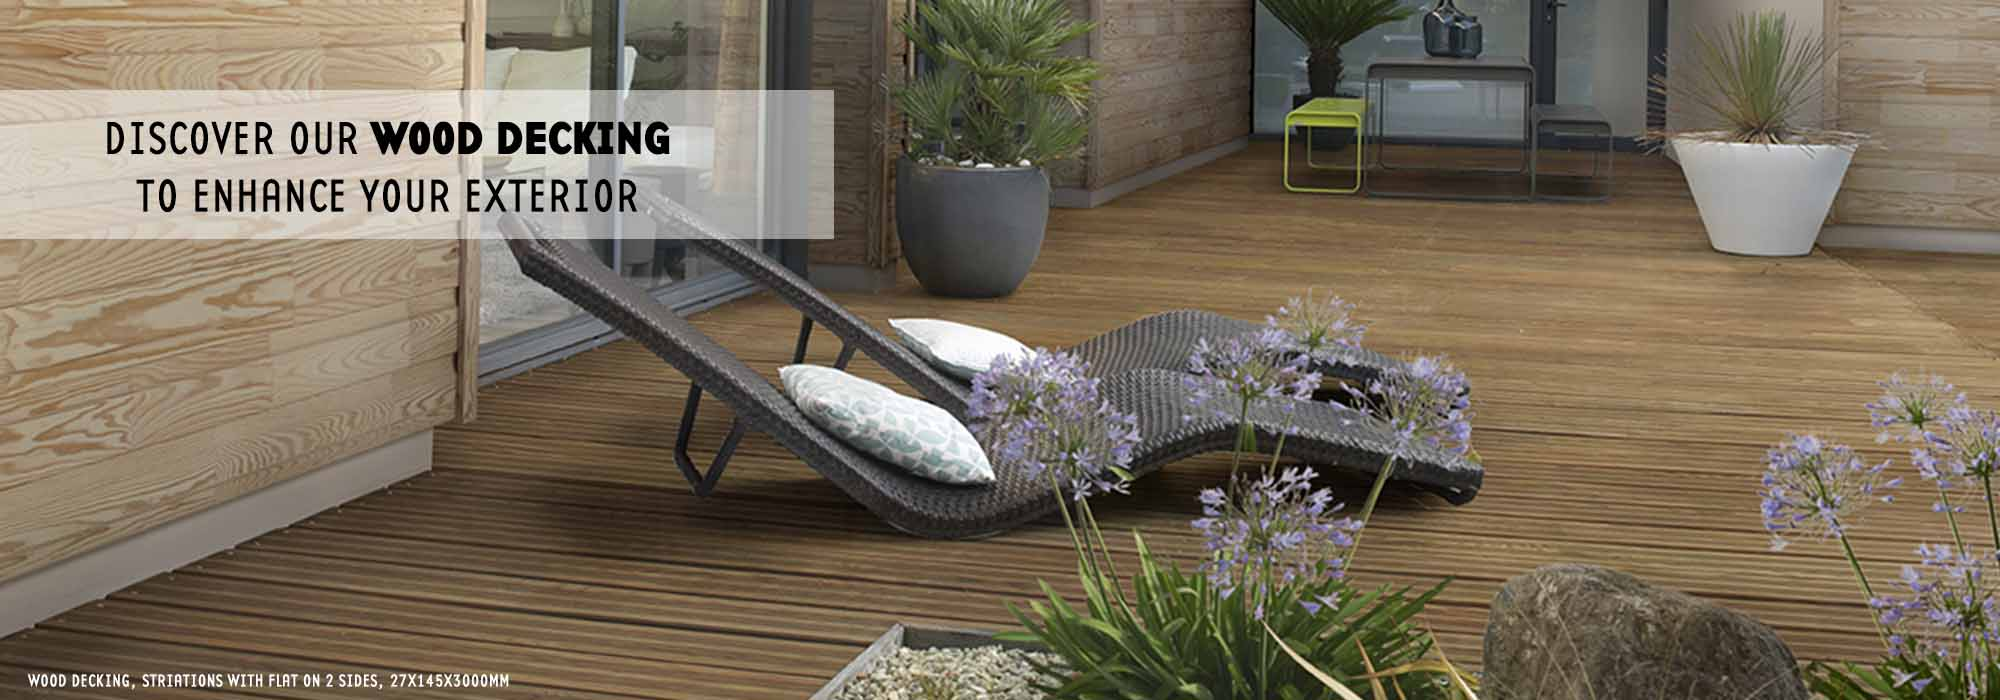 Discover our wood decking to enhance your exterior